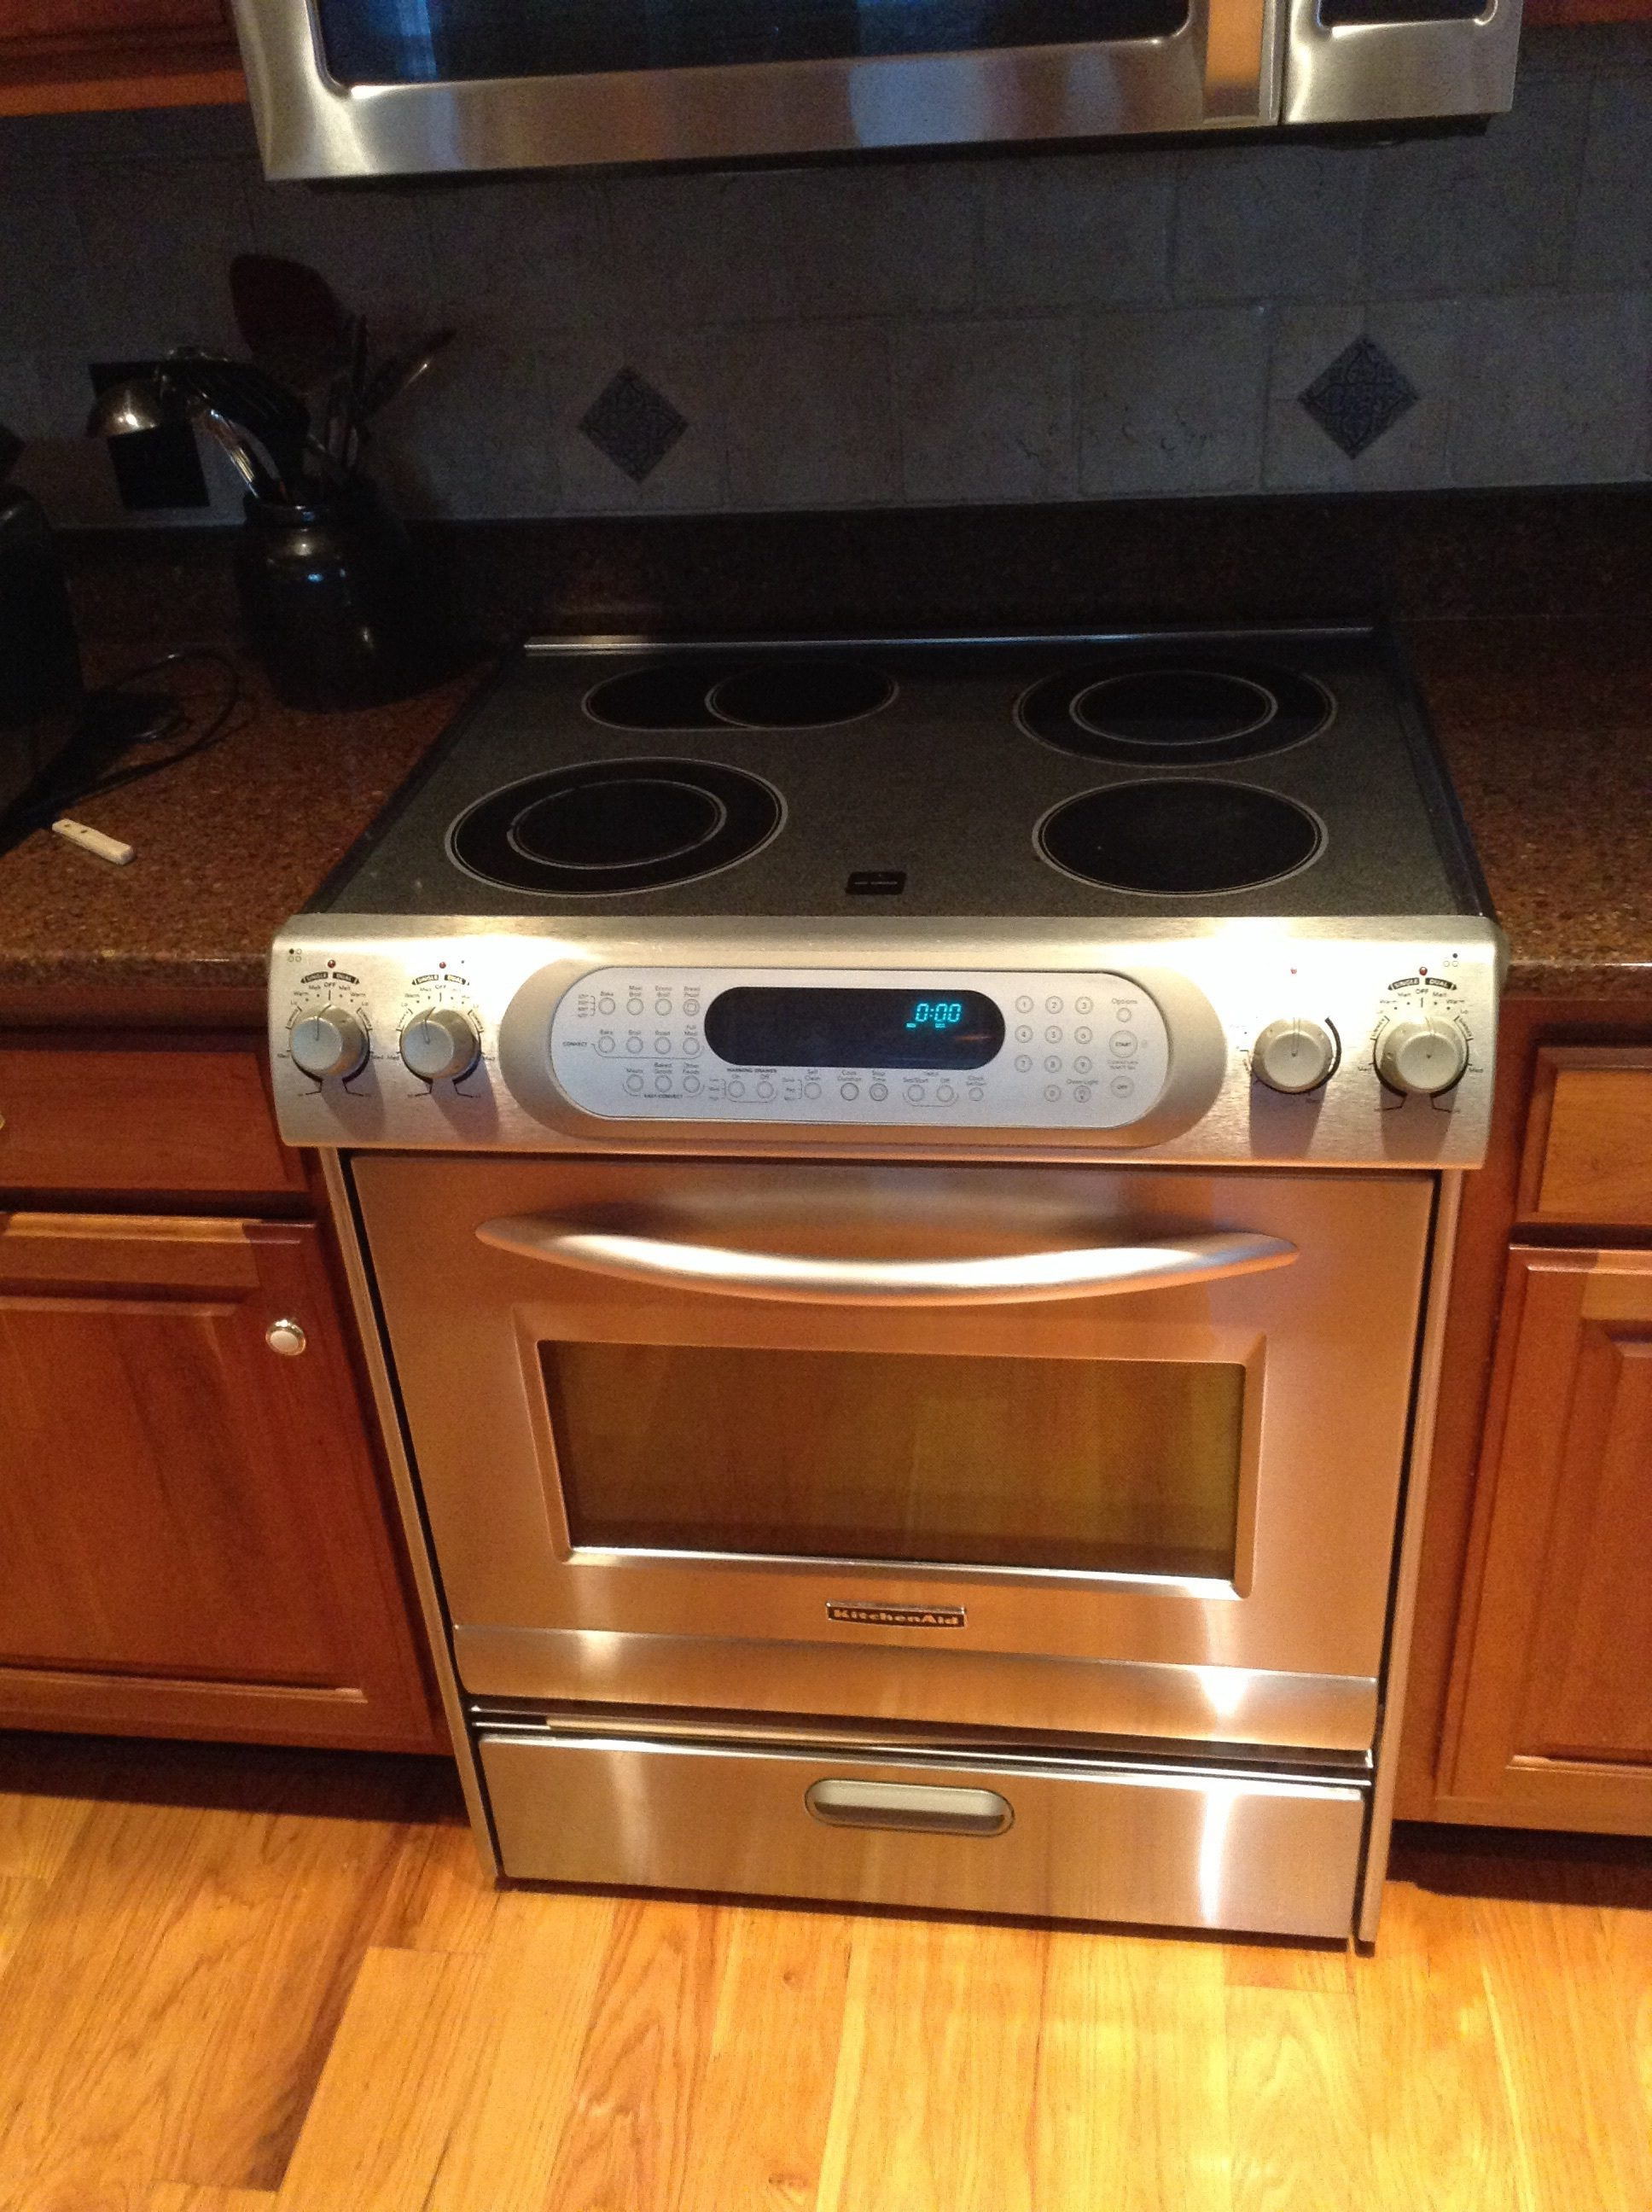 How To Fix A Stove Top 813 Reviews And Complaints About Kitchenaid Stoves Ovens